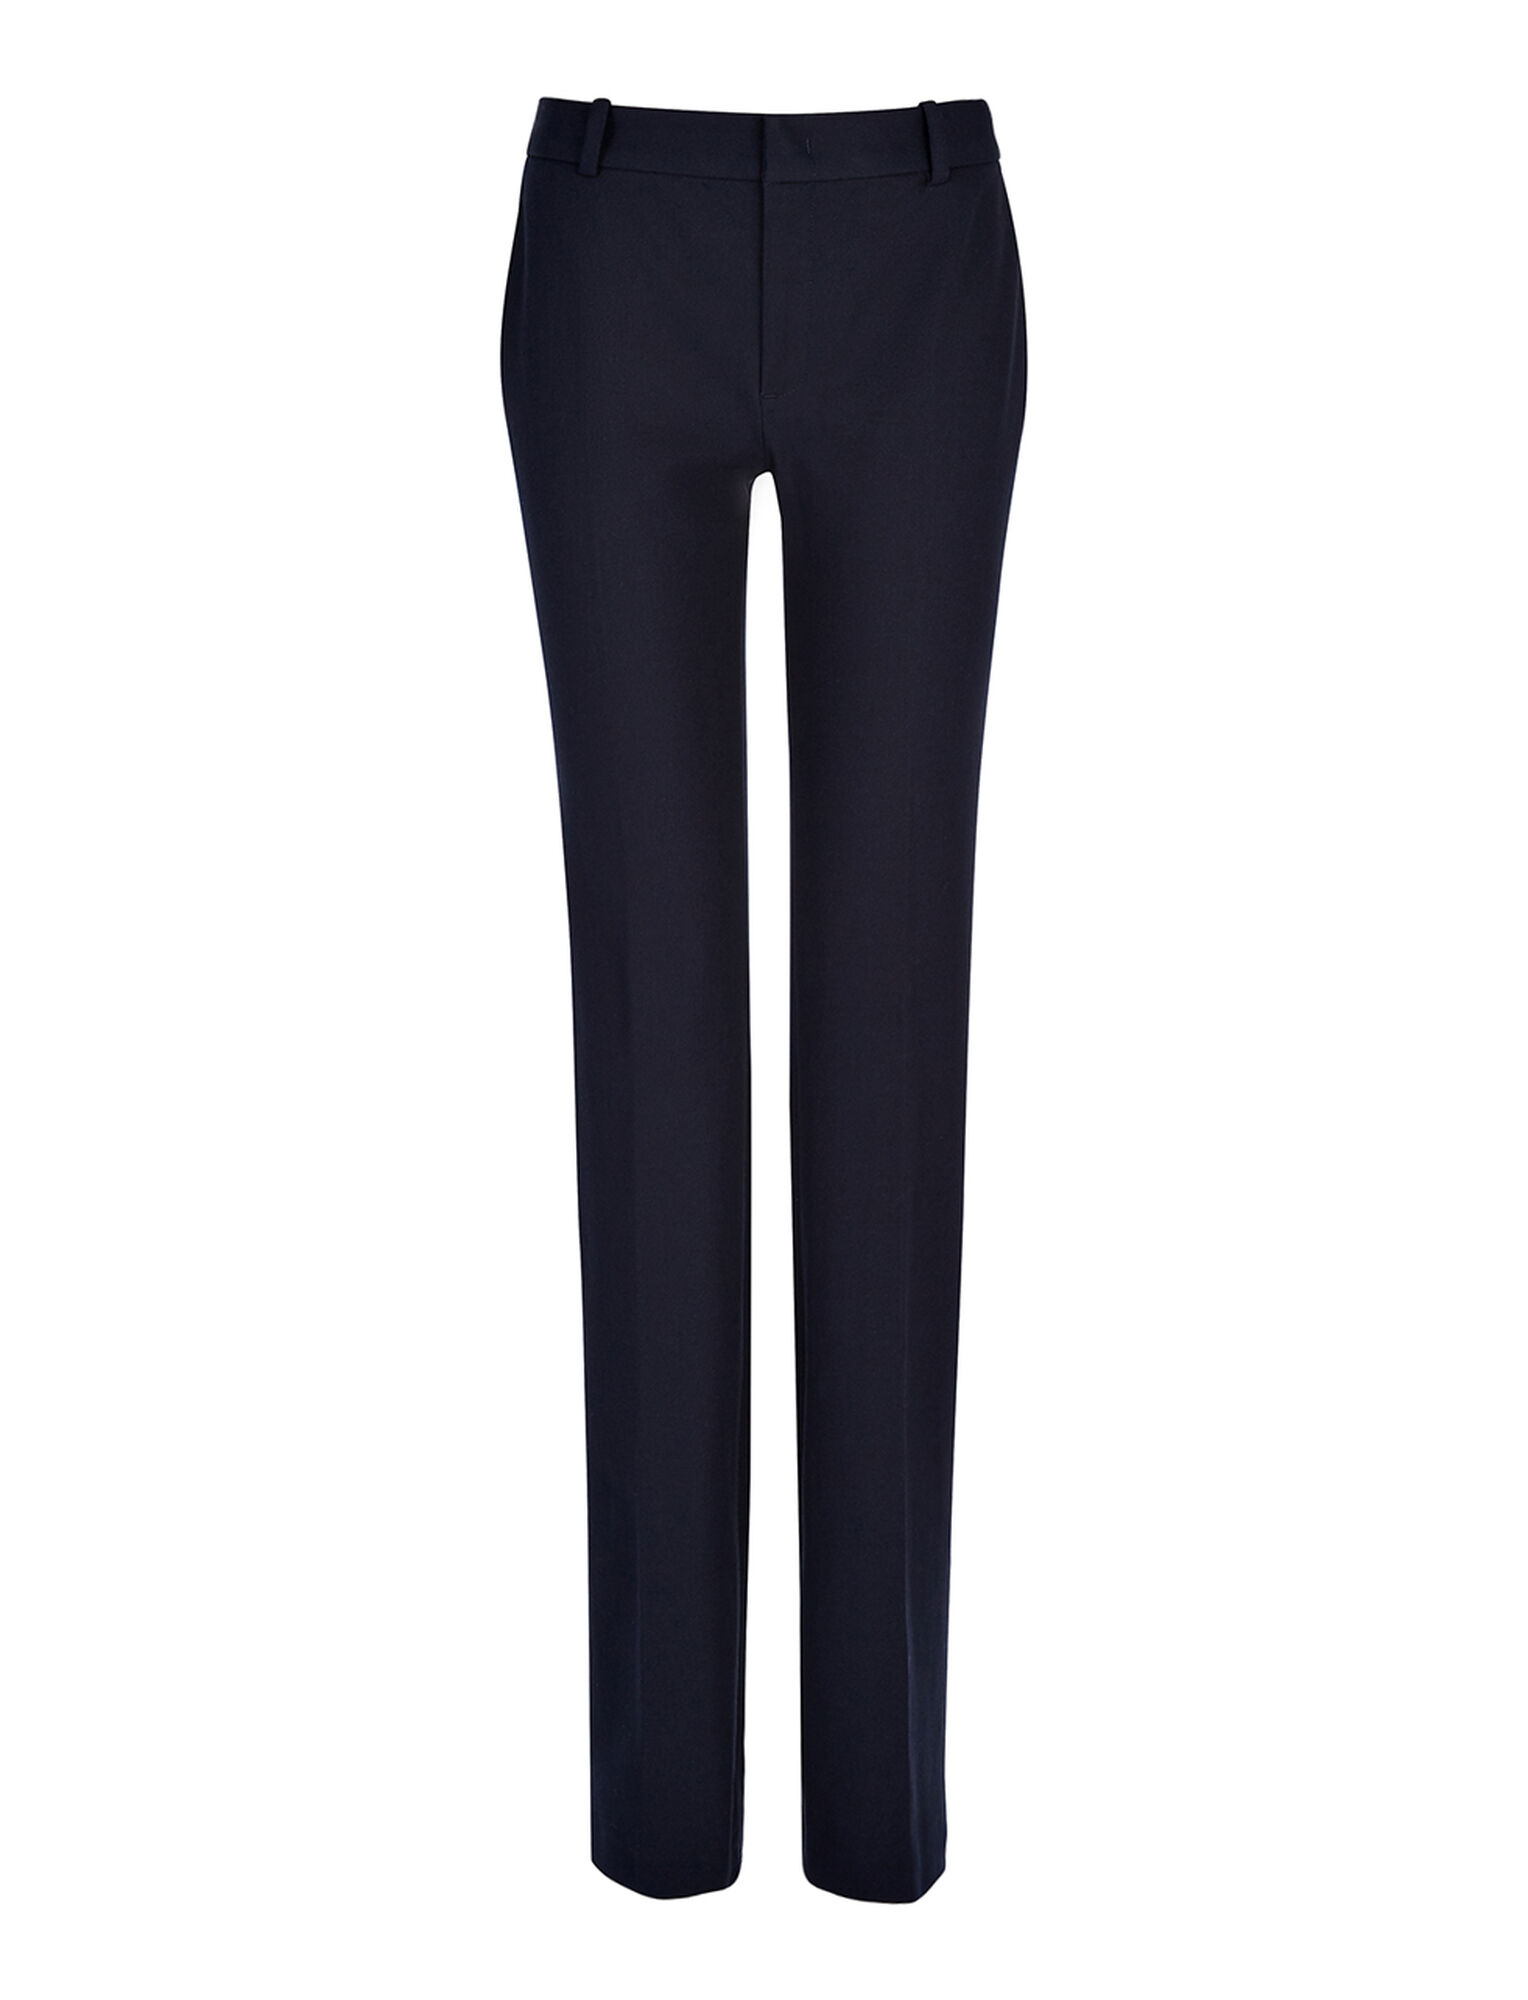 Joseph, Gabardine Stretch New Rocket Trouser, in NAVY